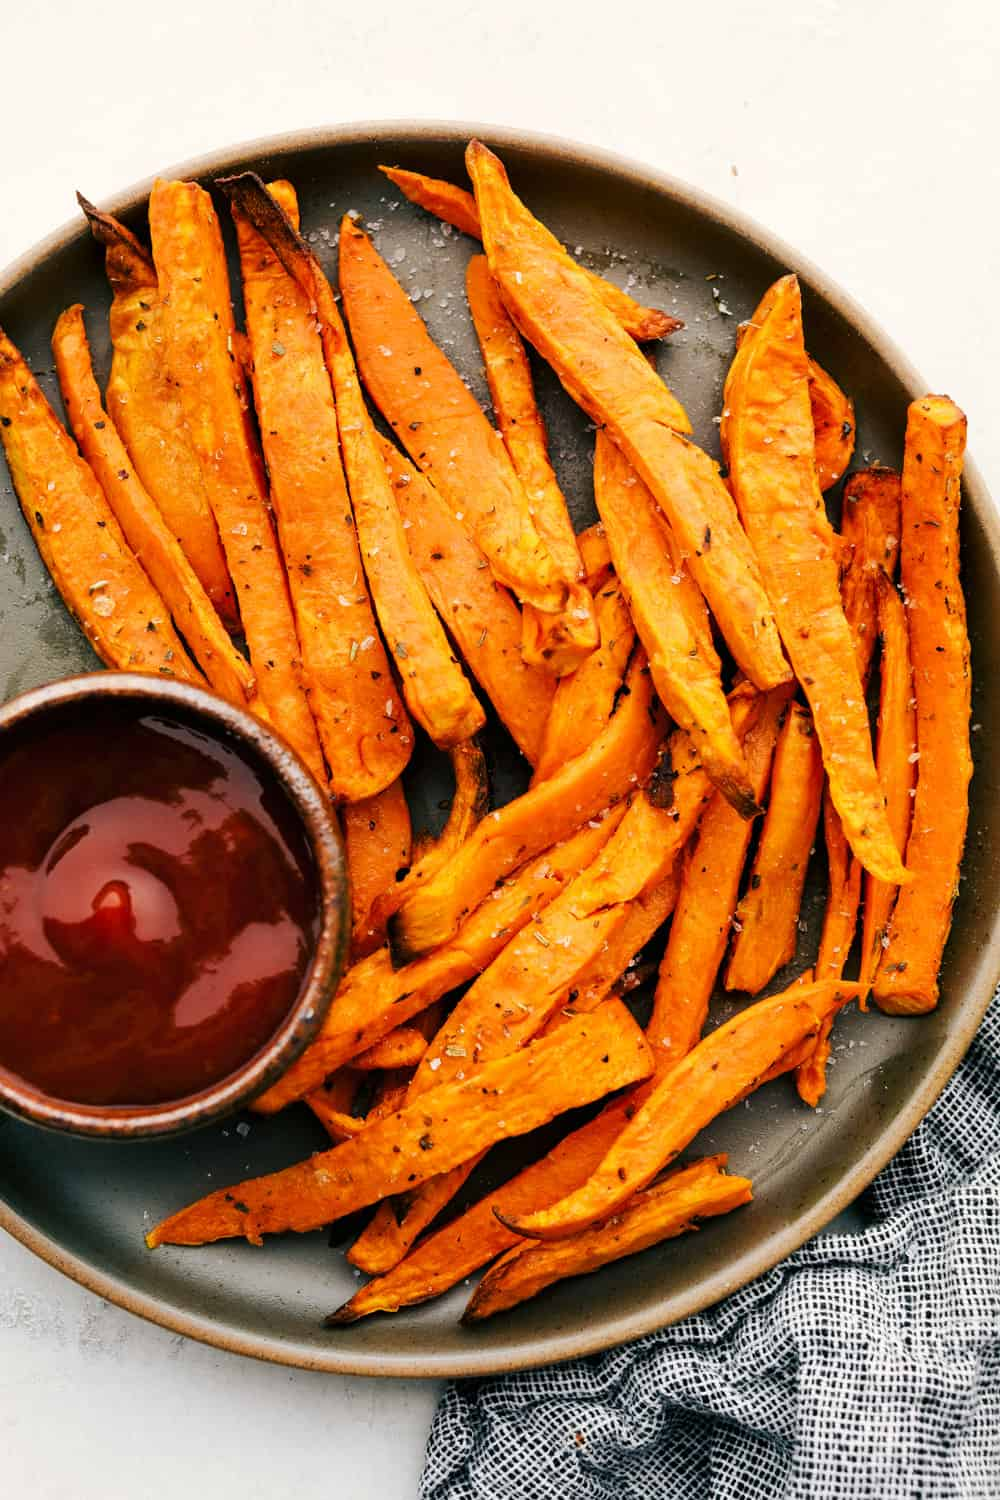 Sweet potato fries on a plate with sauce for dipping.